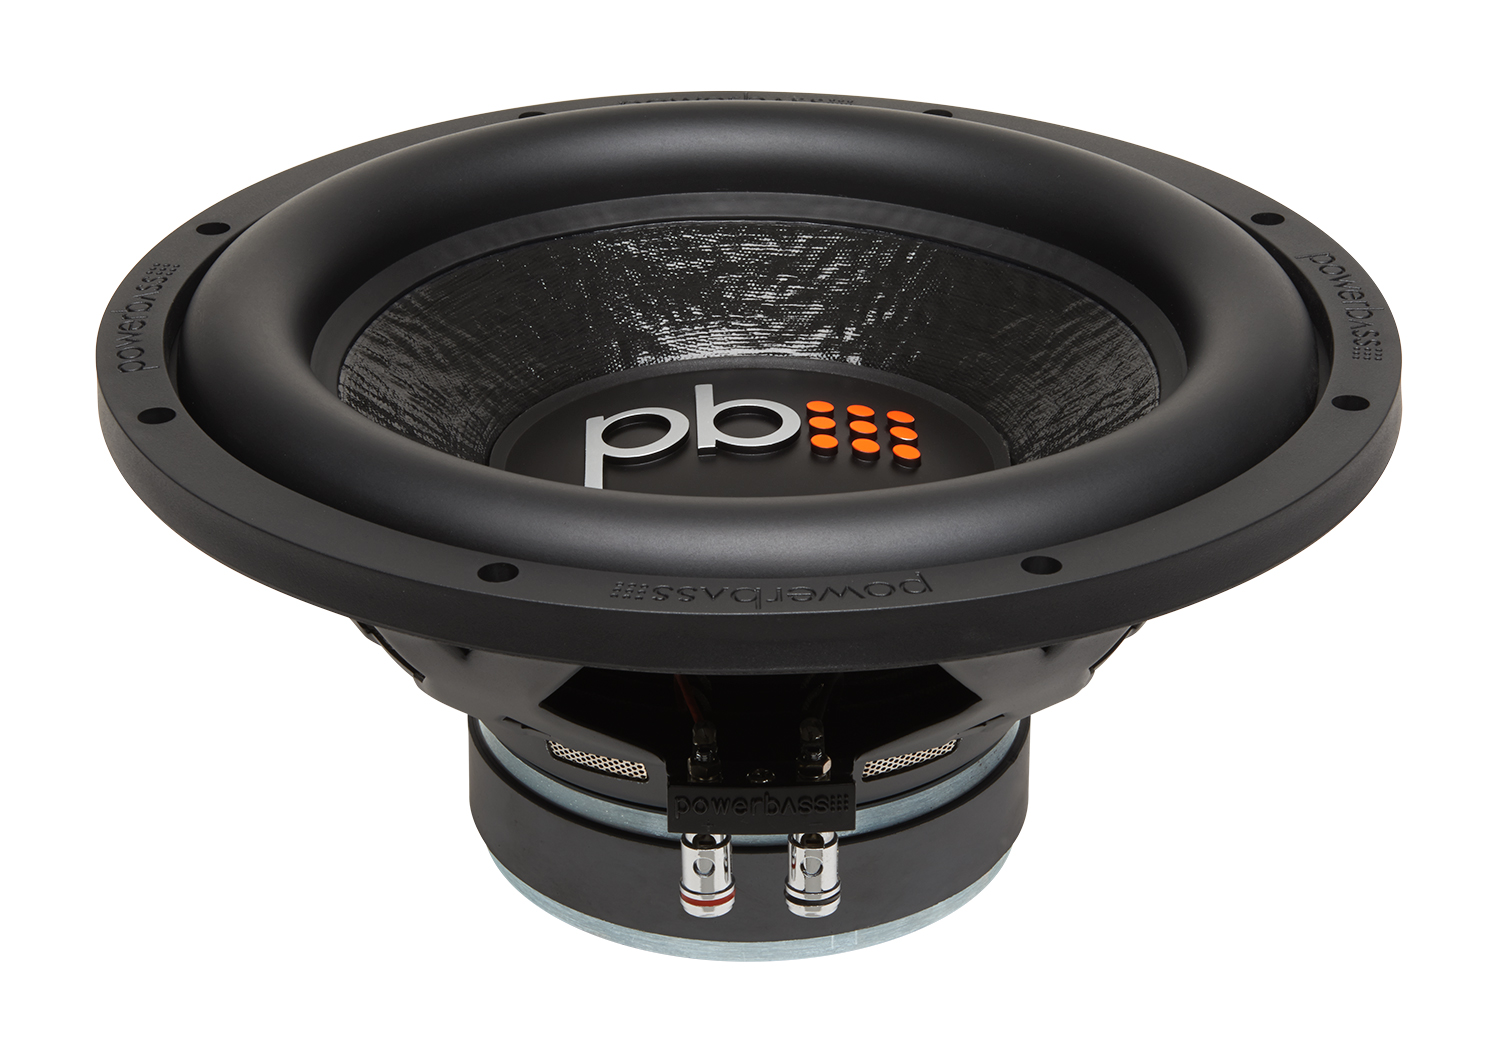 "Powerbass M-1204 M-Series 12"" Single 4-Ohm Subwoofer with 5.5"" Mounting Depth"